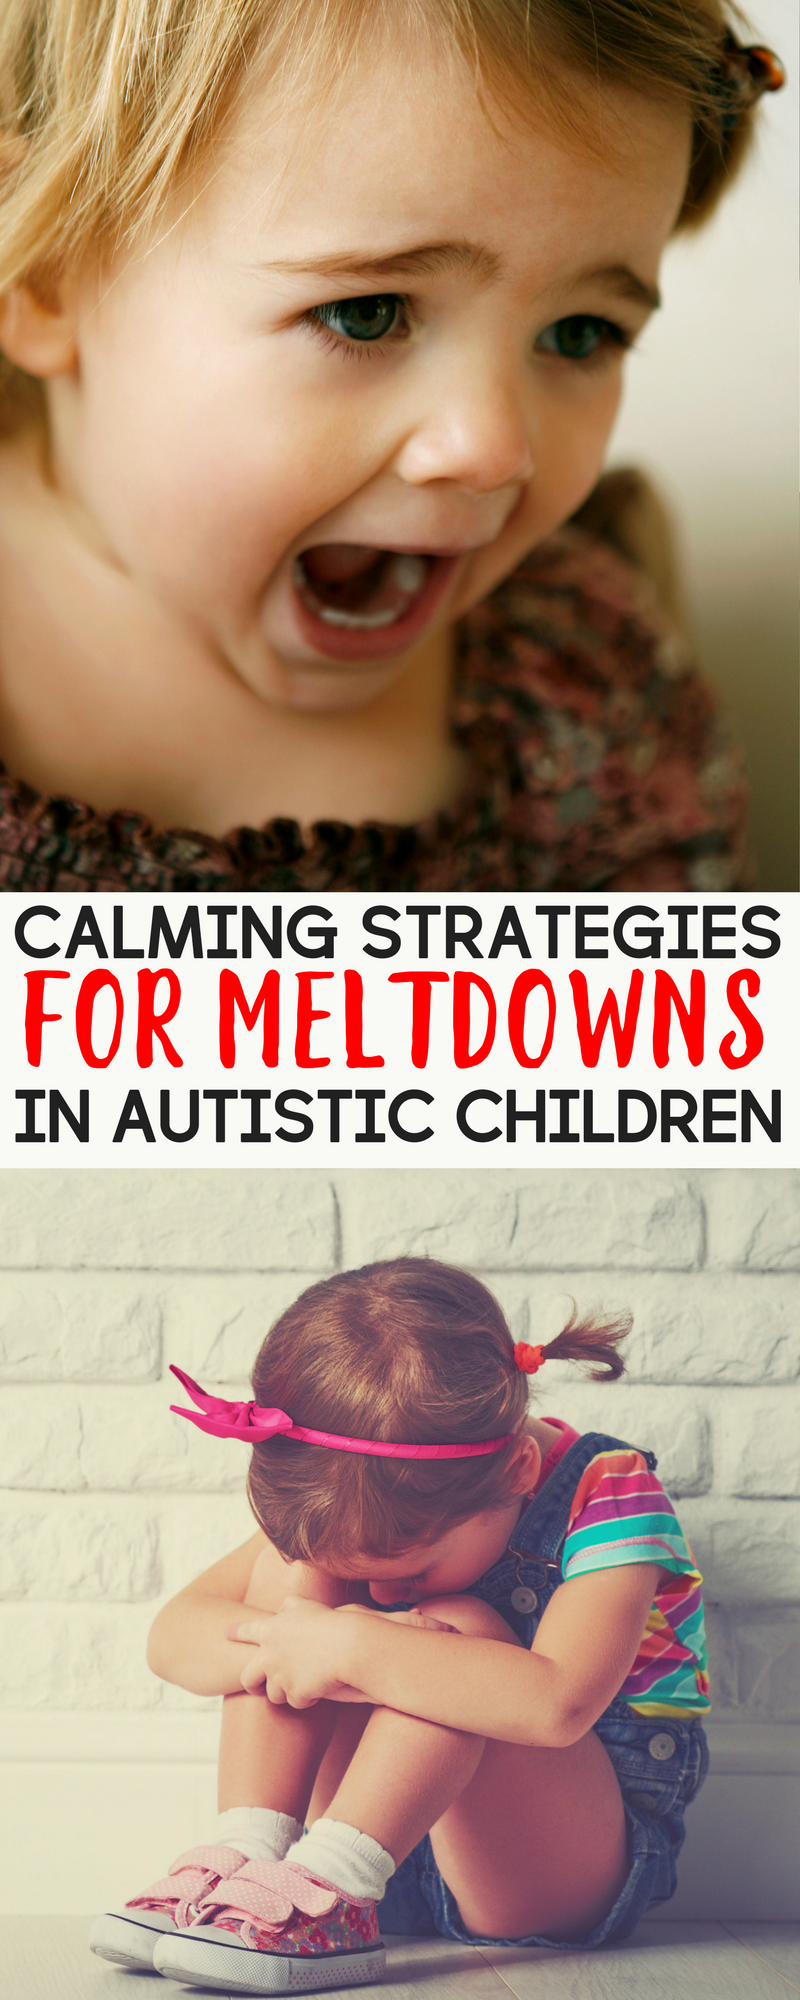 5 Calming Strategies for Meltdowns in Autistic Children | Best of